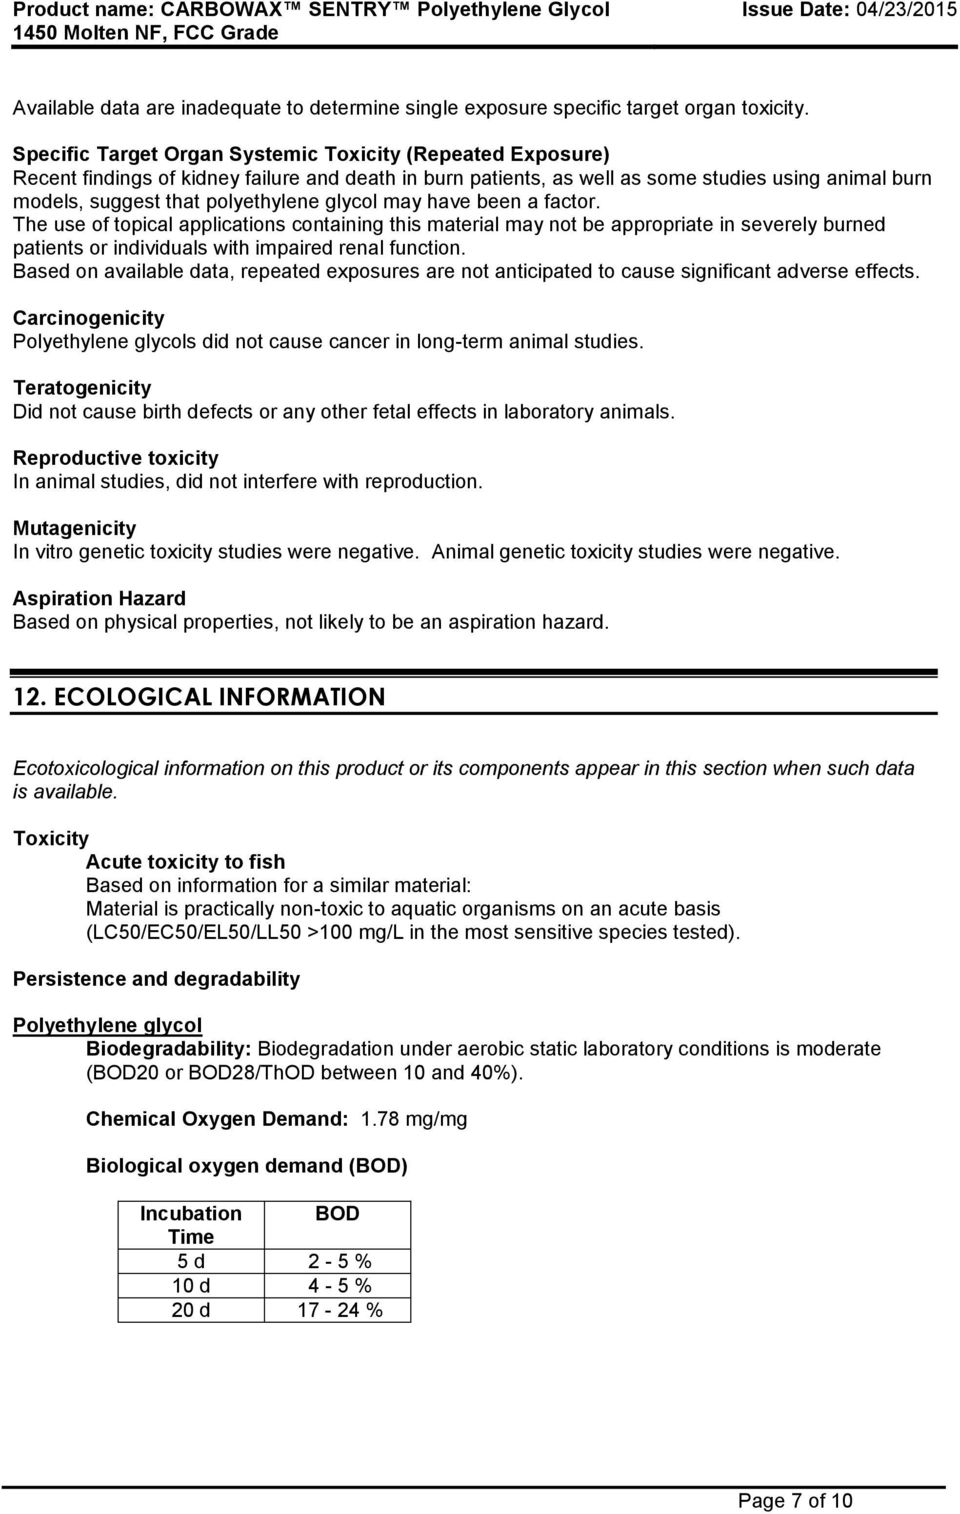 SAFETY DATA SHEET THE DOW CHEMICAL COMPANY - PDF